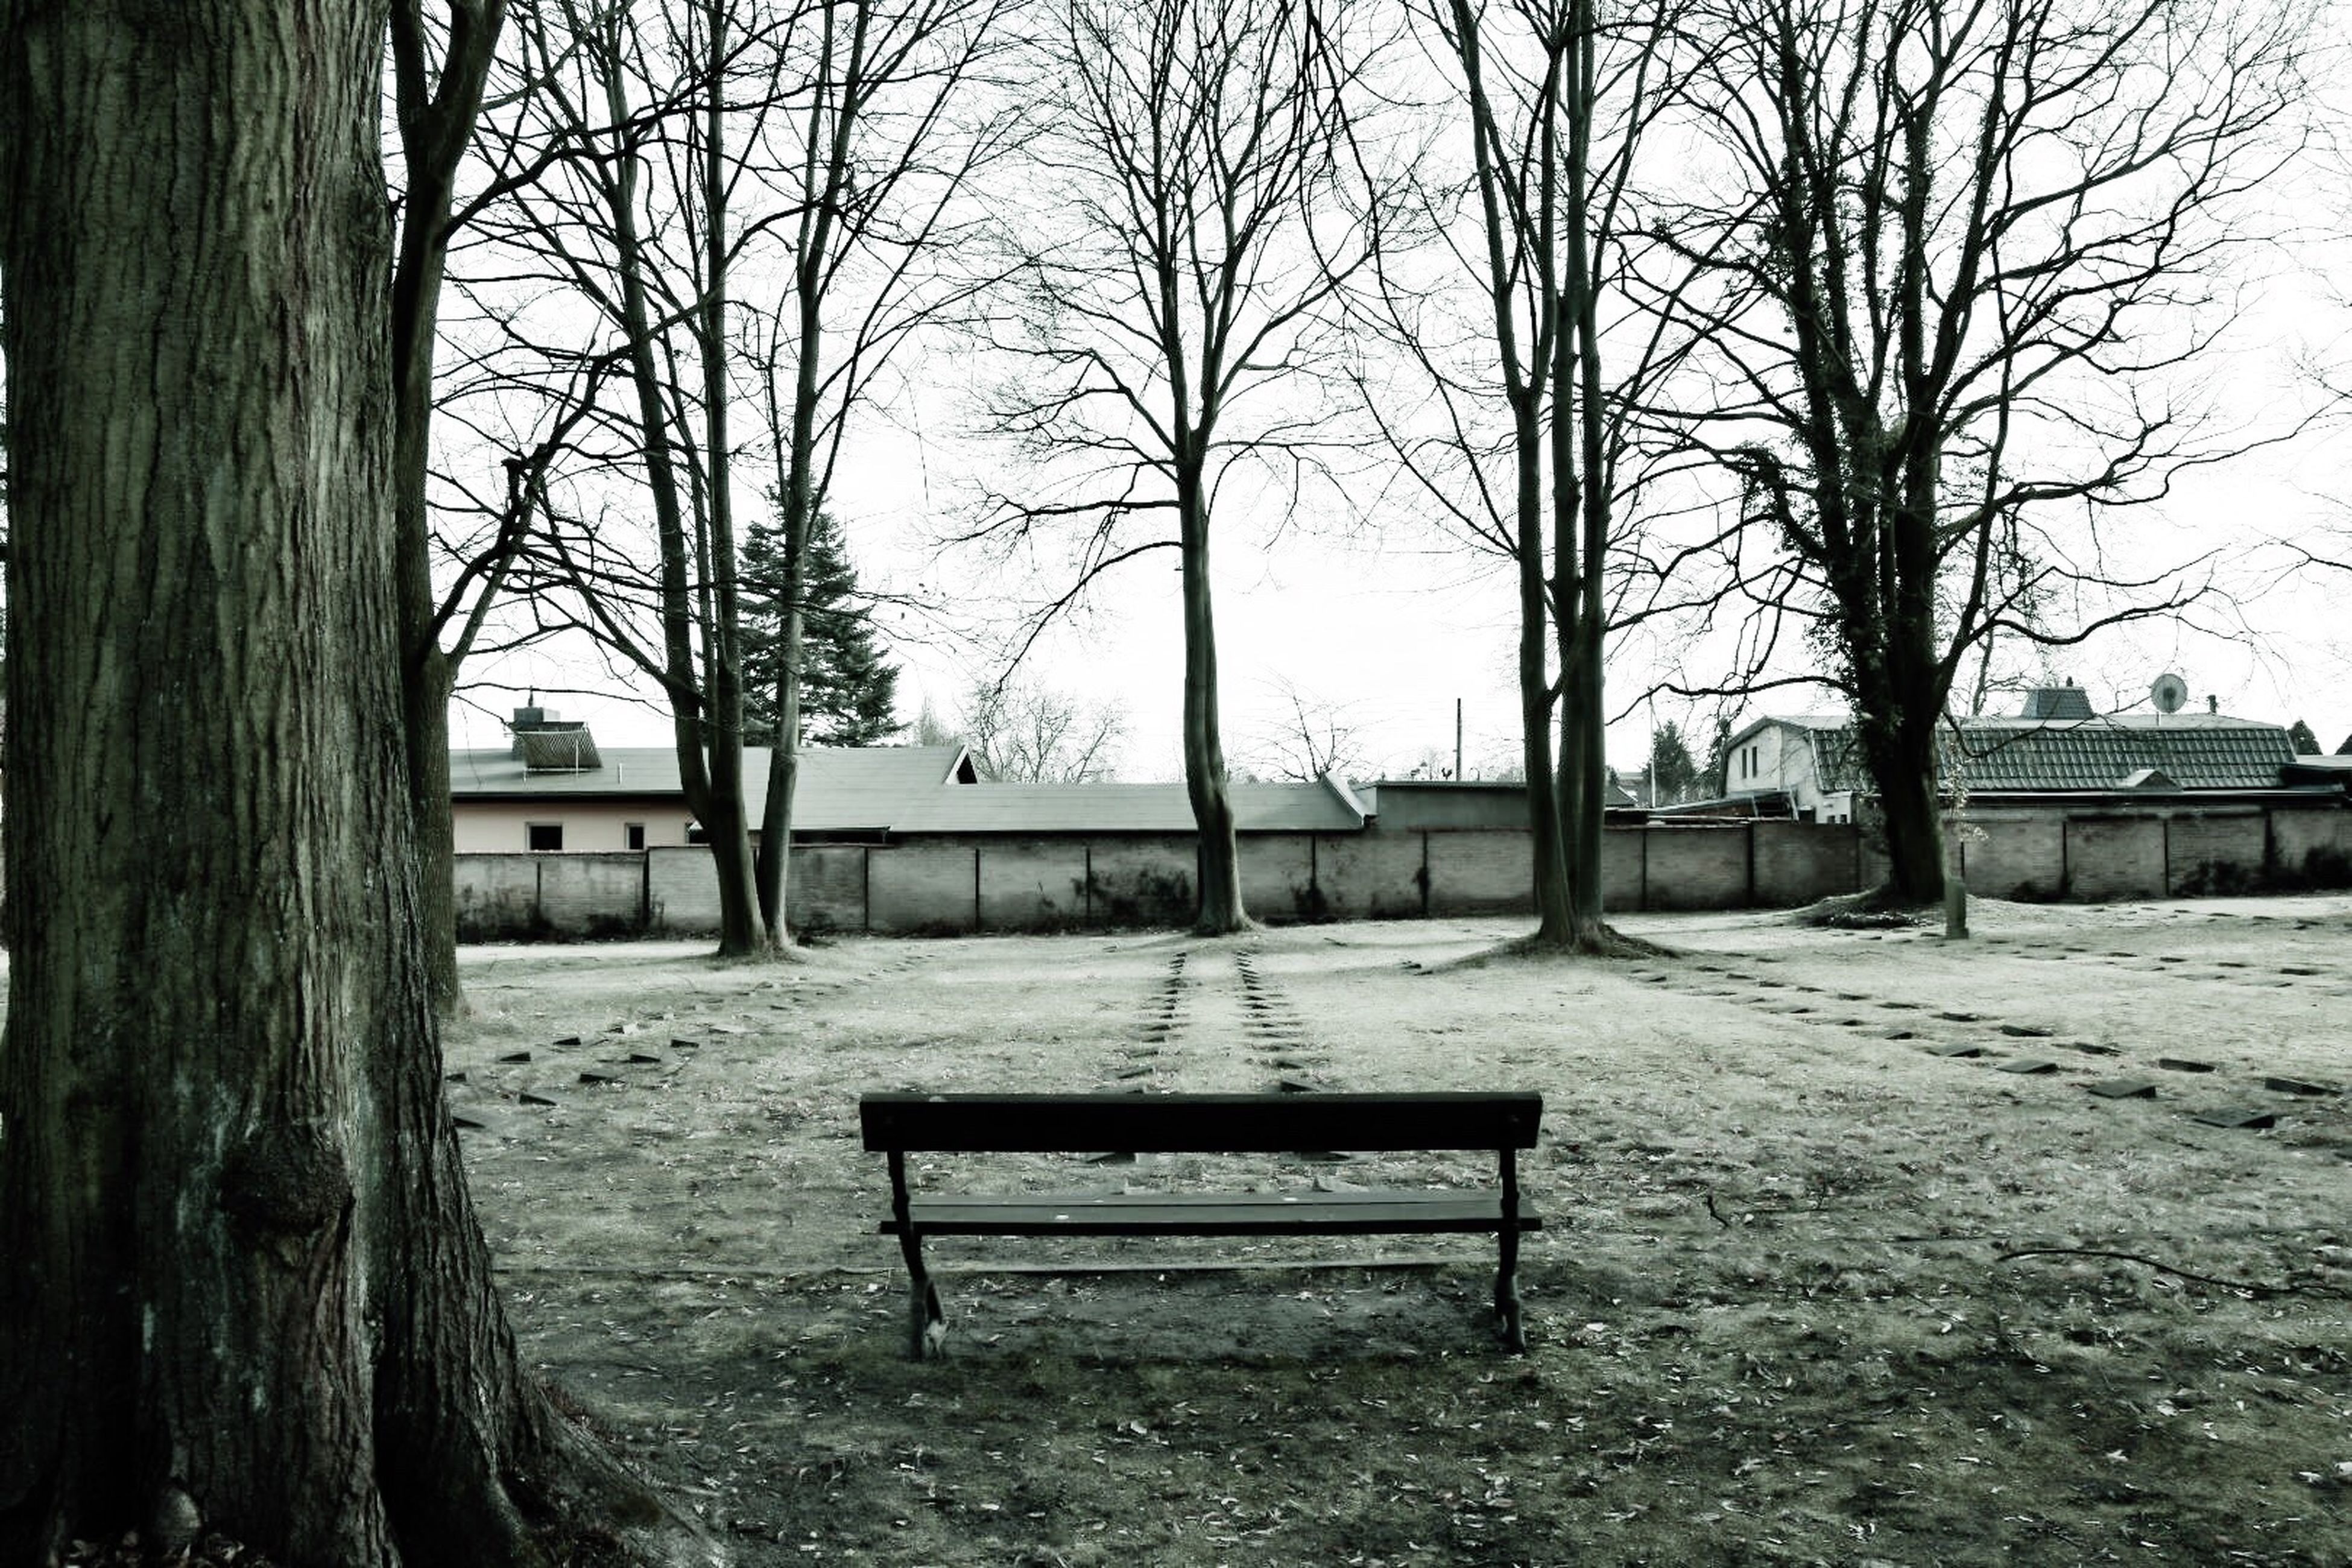 tree, playground, outdoors, no people, nature, bare tree, day